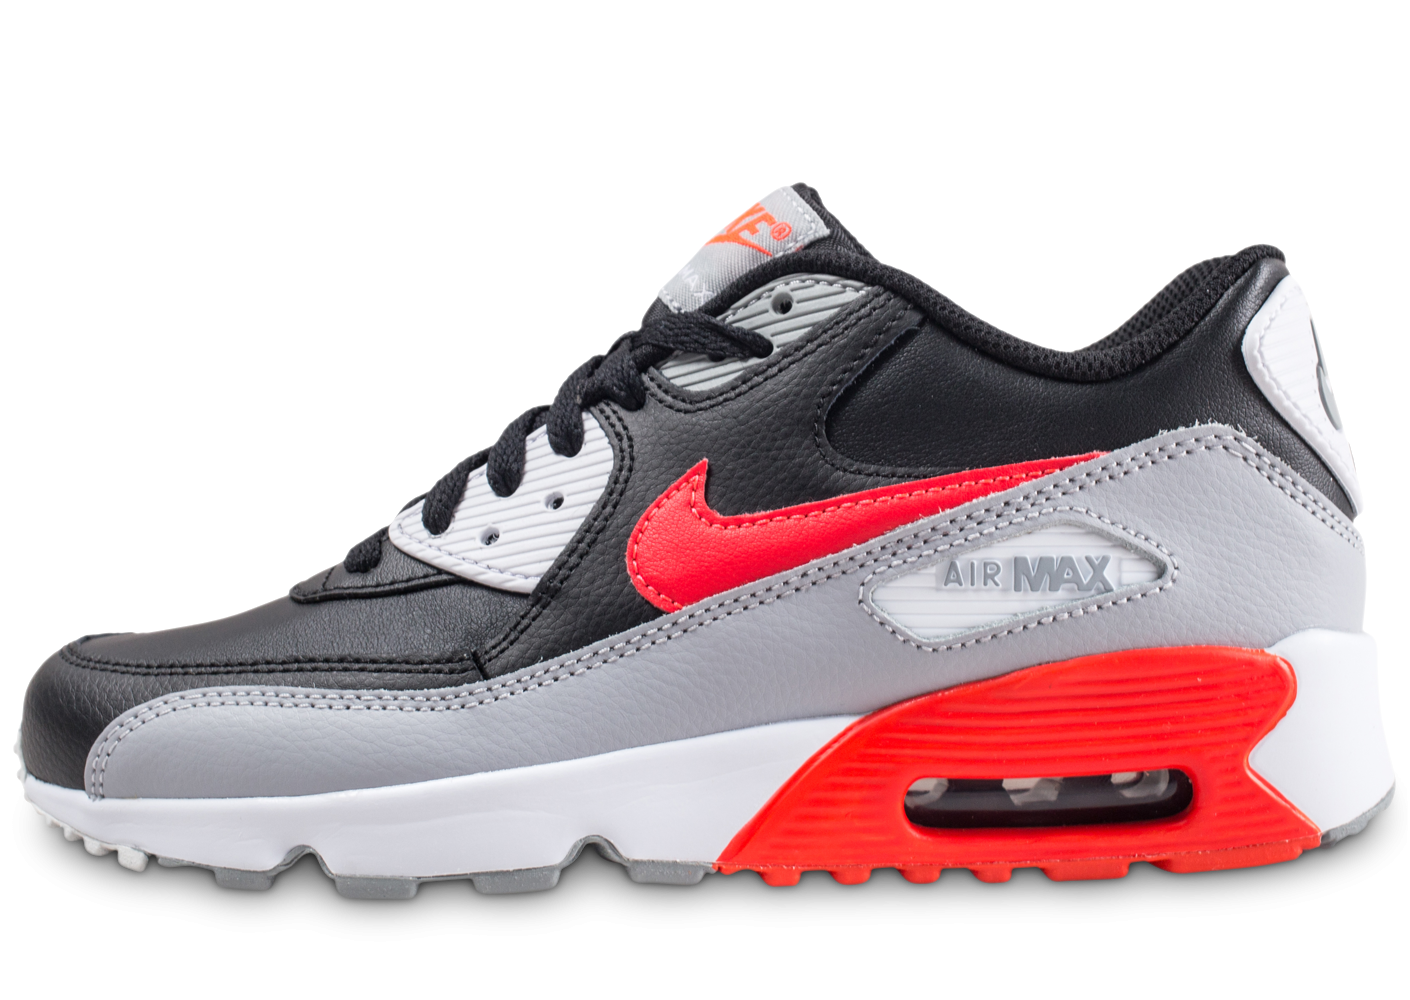 détaillant en ligne 5a620 908bf Nike Air Max 90 Leather noire et rouge junior